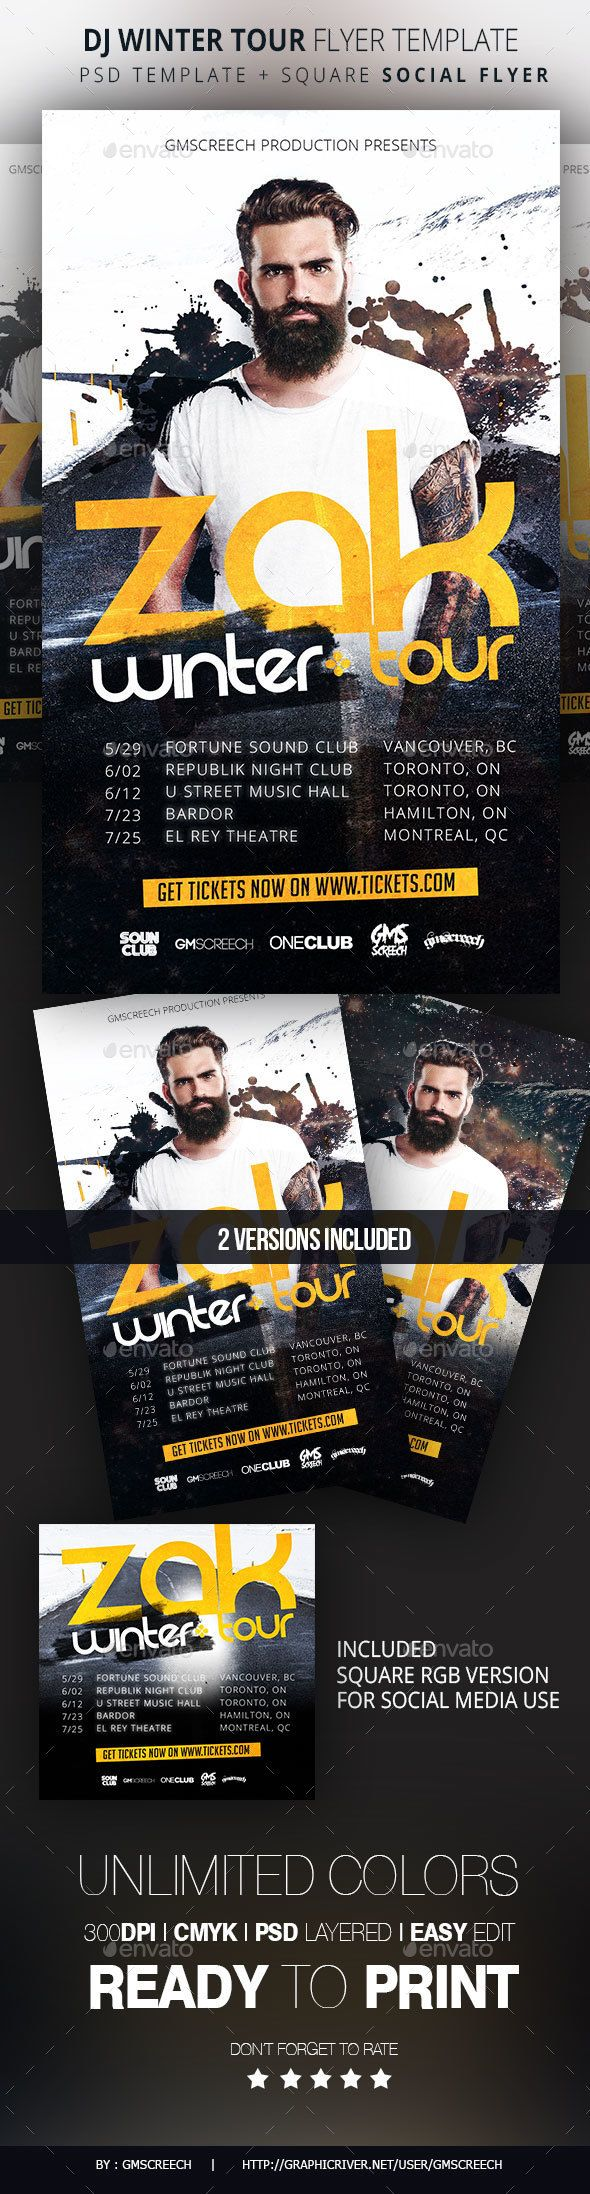 dj winter tour dates flyer template flyer template flyers and dj winter tour dates flyer template psd design graphicriver